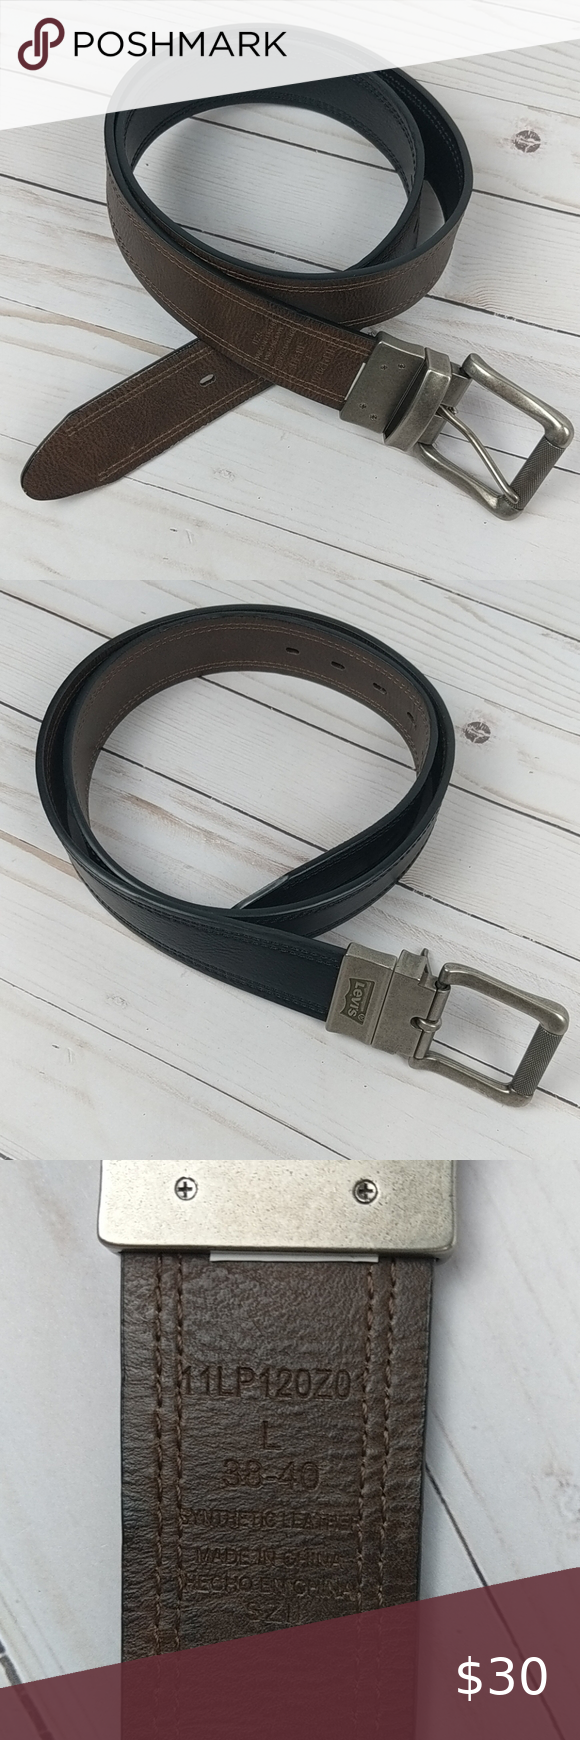 "Levi's Reversible Brown Black Belt Size L 38-40 Men's reversible brown and black synthetic leather belt.  Size 38/40.  Total Length: 47"" Shortest Hole: 38"" Longest Hole: 44"" Width: 1.5""  A0509 Levi's Accessories Belts"